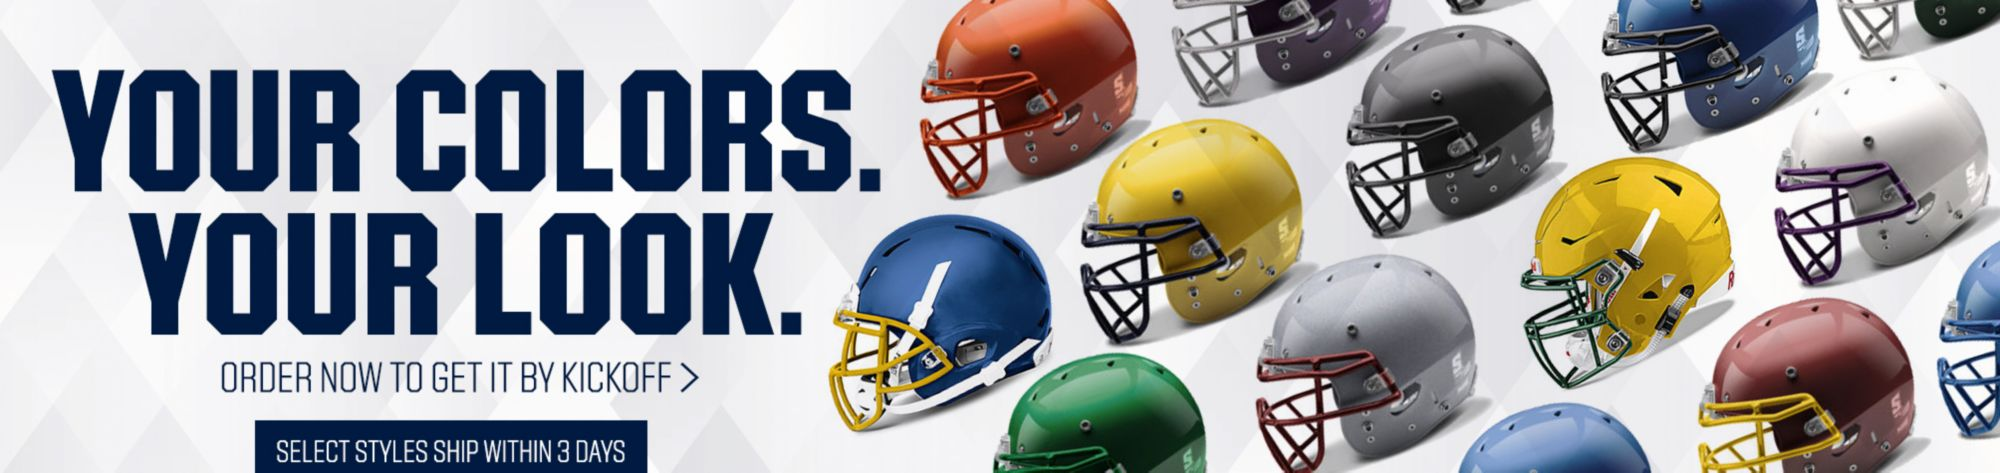 6c585766b3f98 Football Helmets for Youth & Kids | Best Price Guarantee at DICK'S